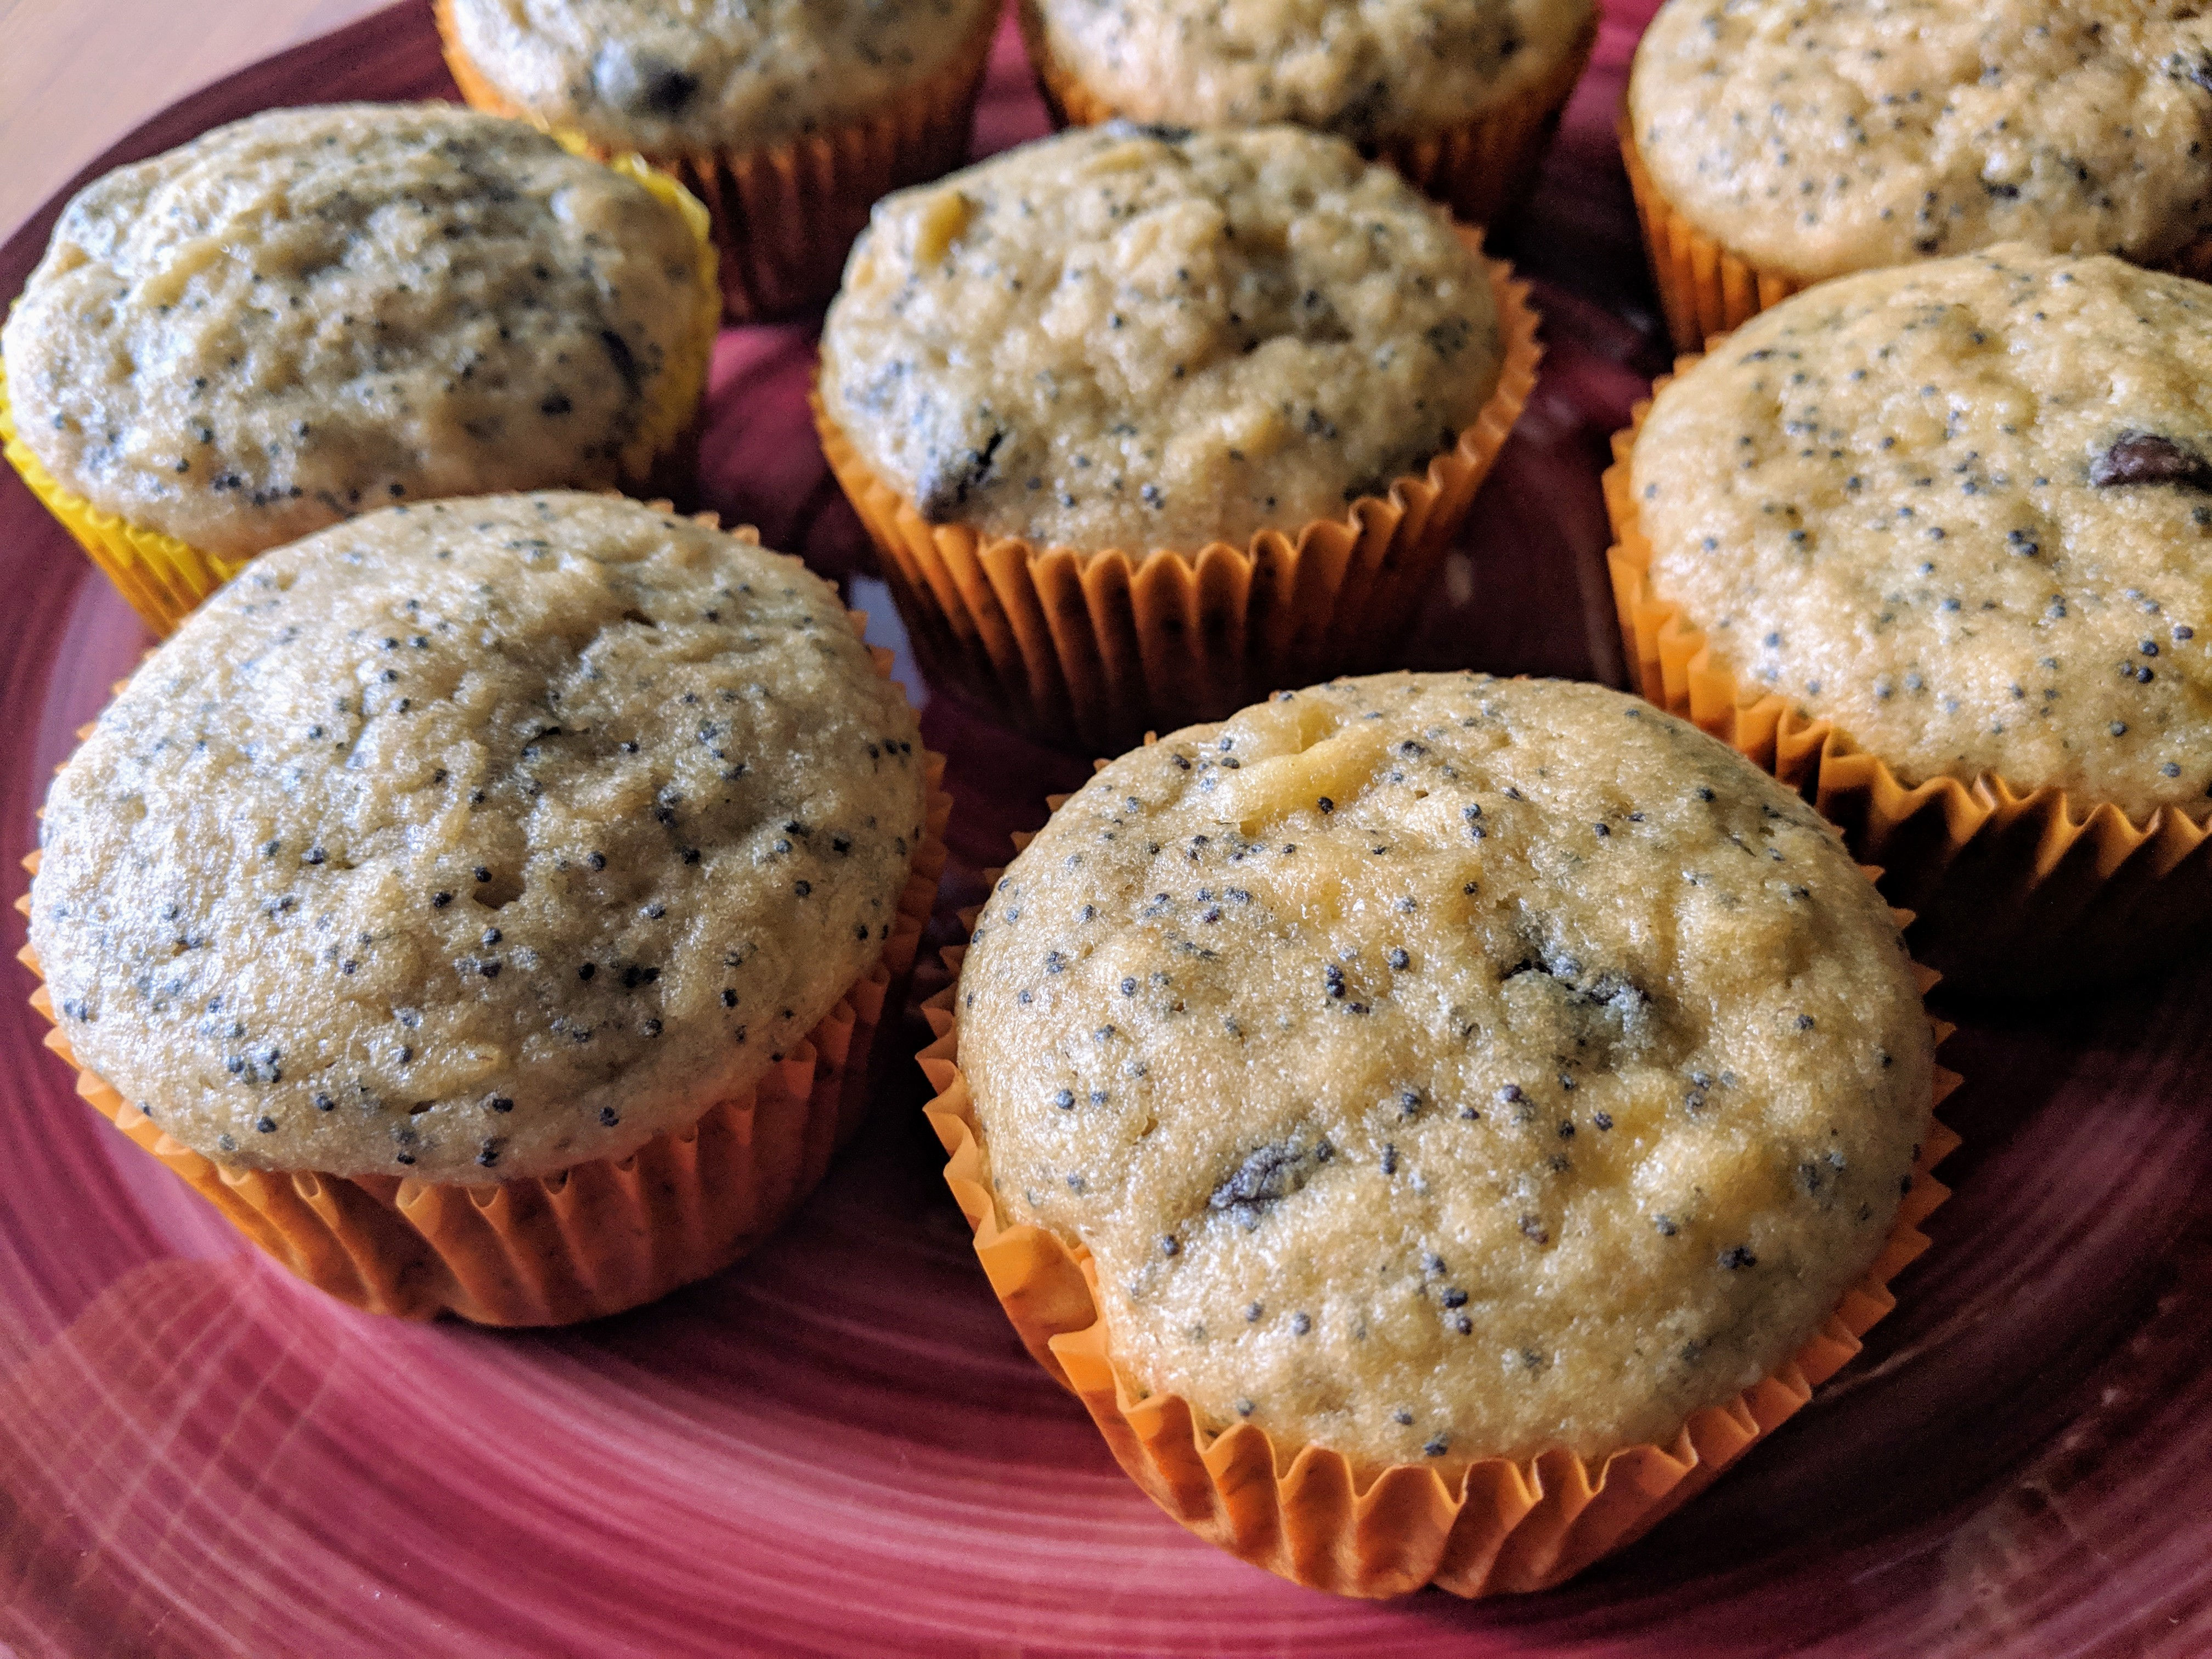 In honor of National Muffin Day - Nutrition Thyme RD